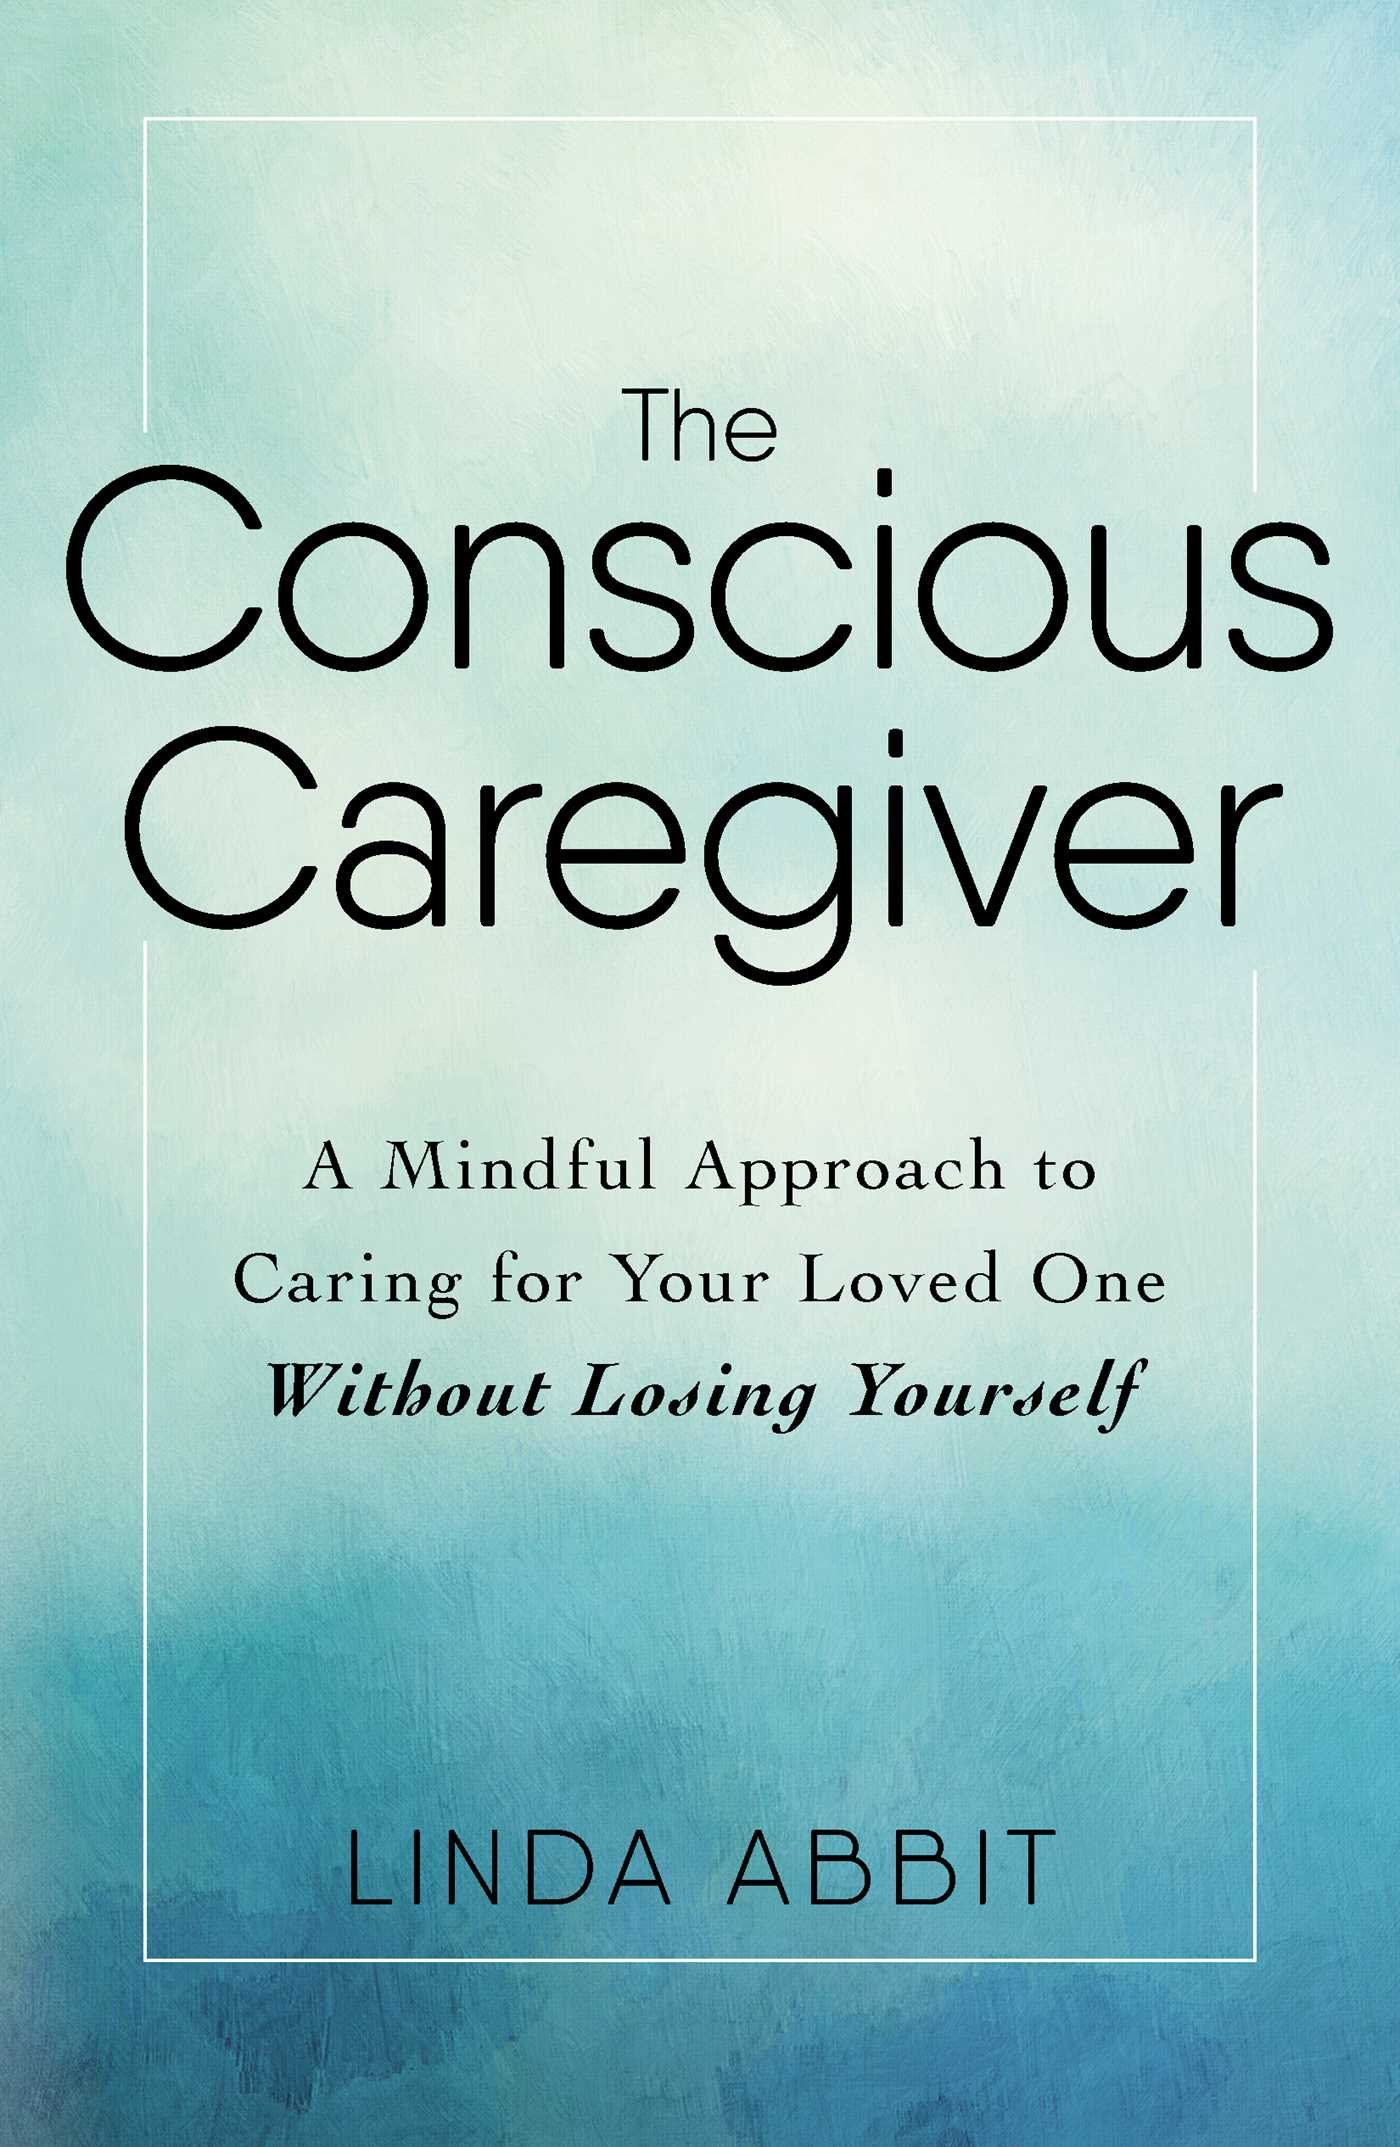 Book of the Week: The Conscious Caregiver